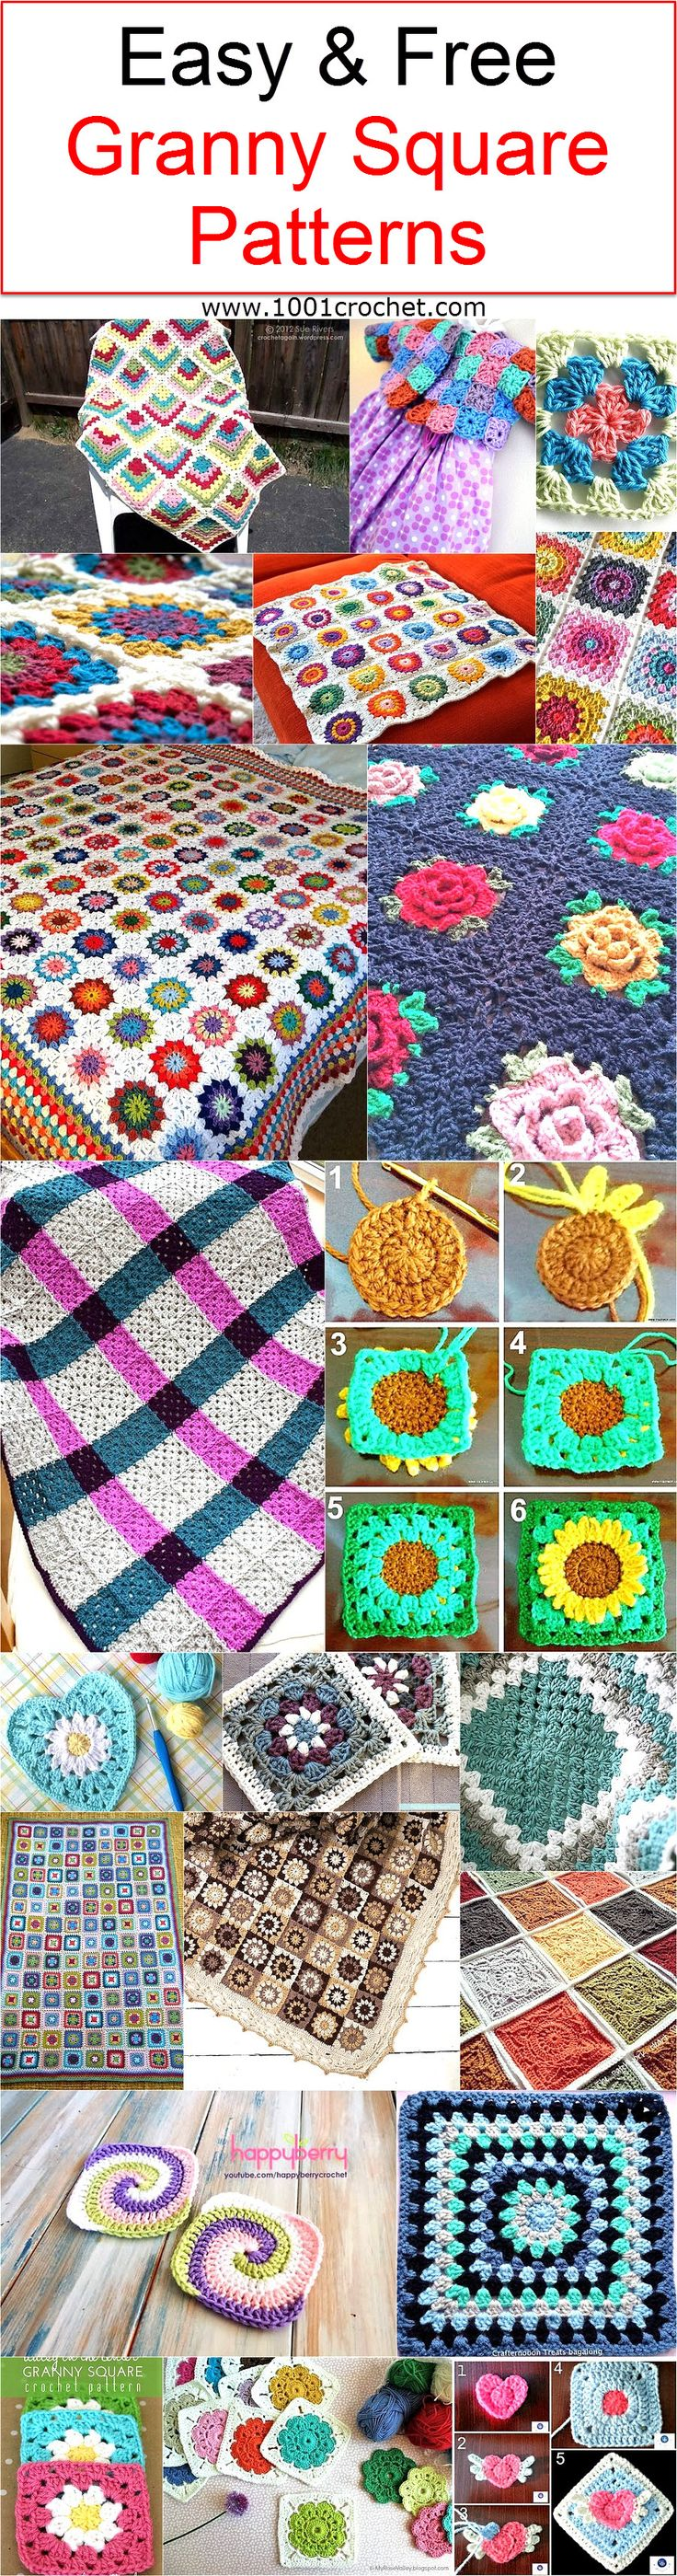 Best 25 granny squares ideas on pinterest granny square here i am going to present some of the awesome easy and free granny square patterns bankloansurffo Image collections